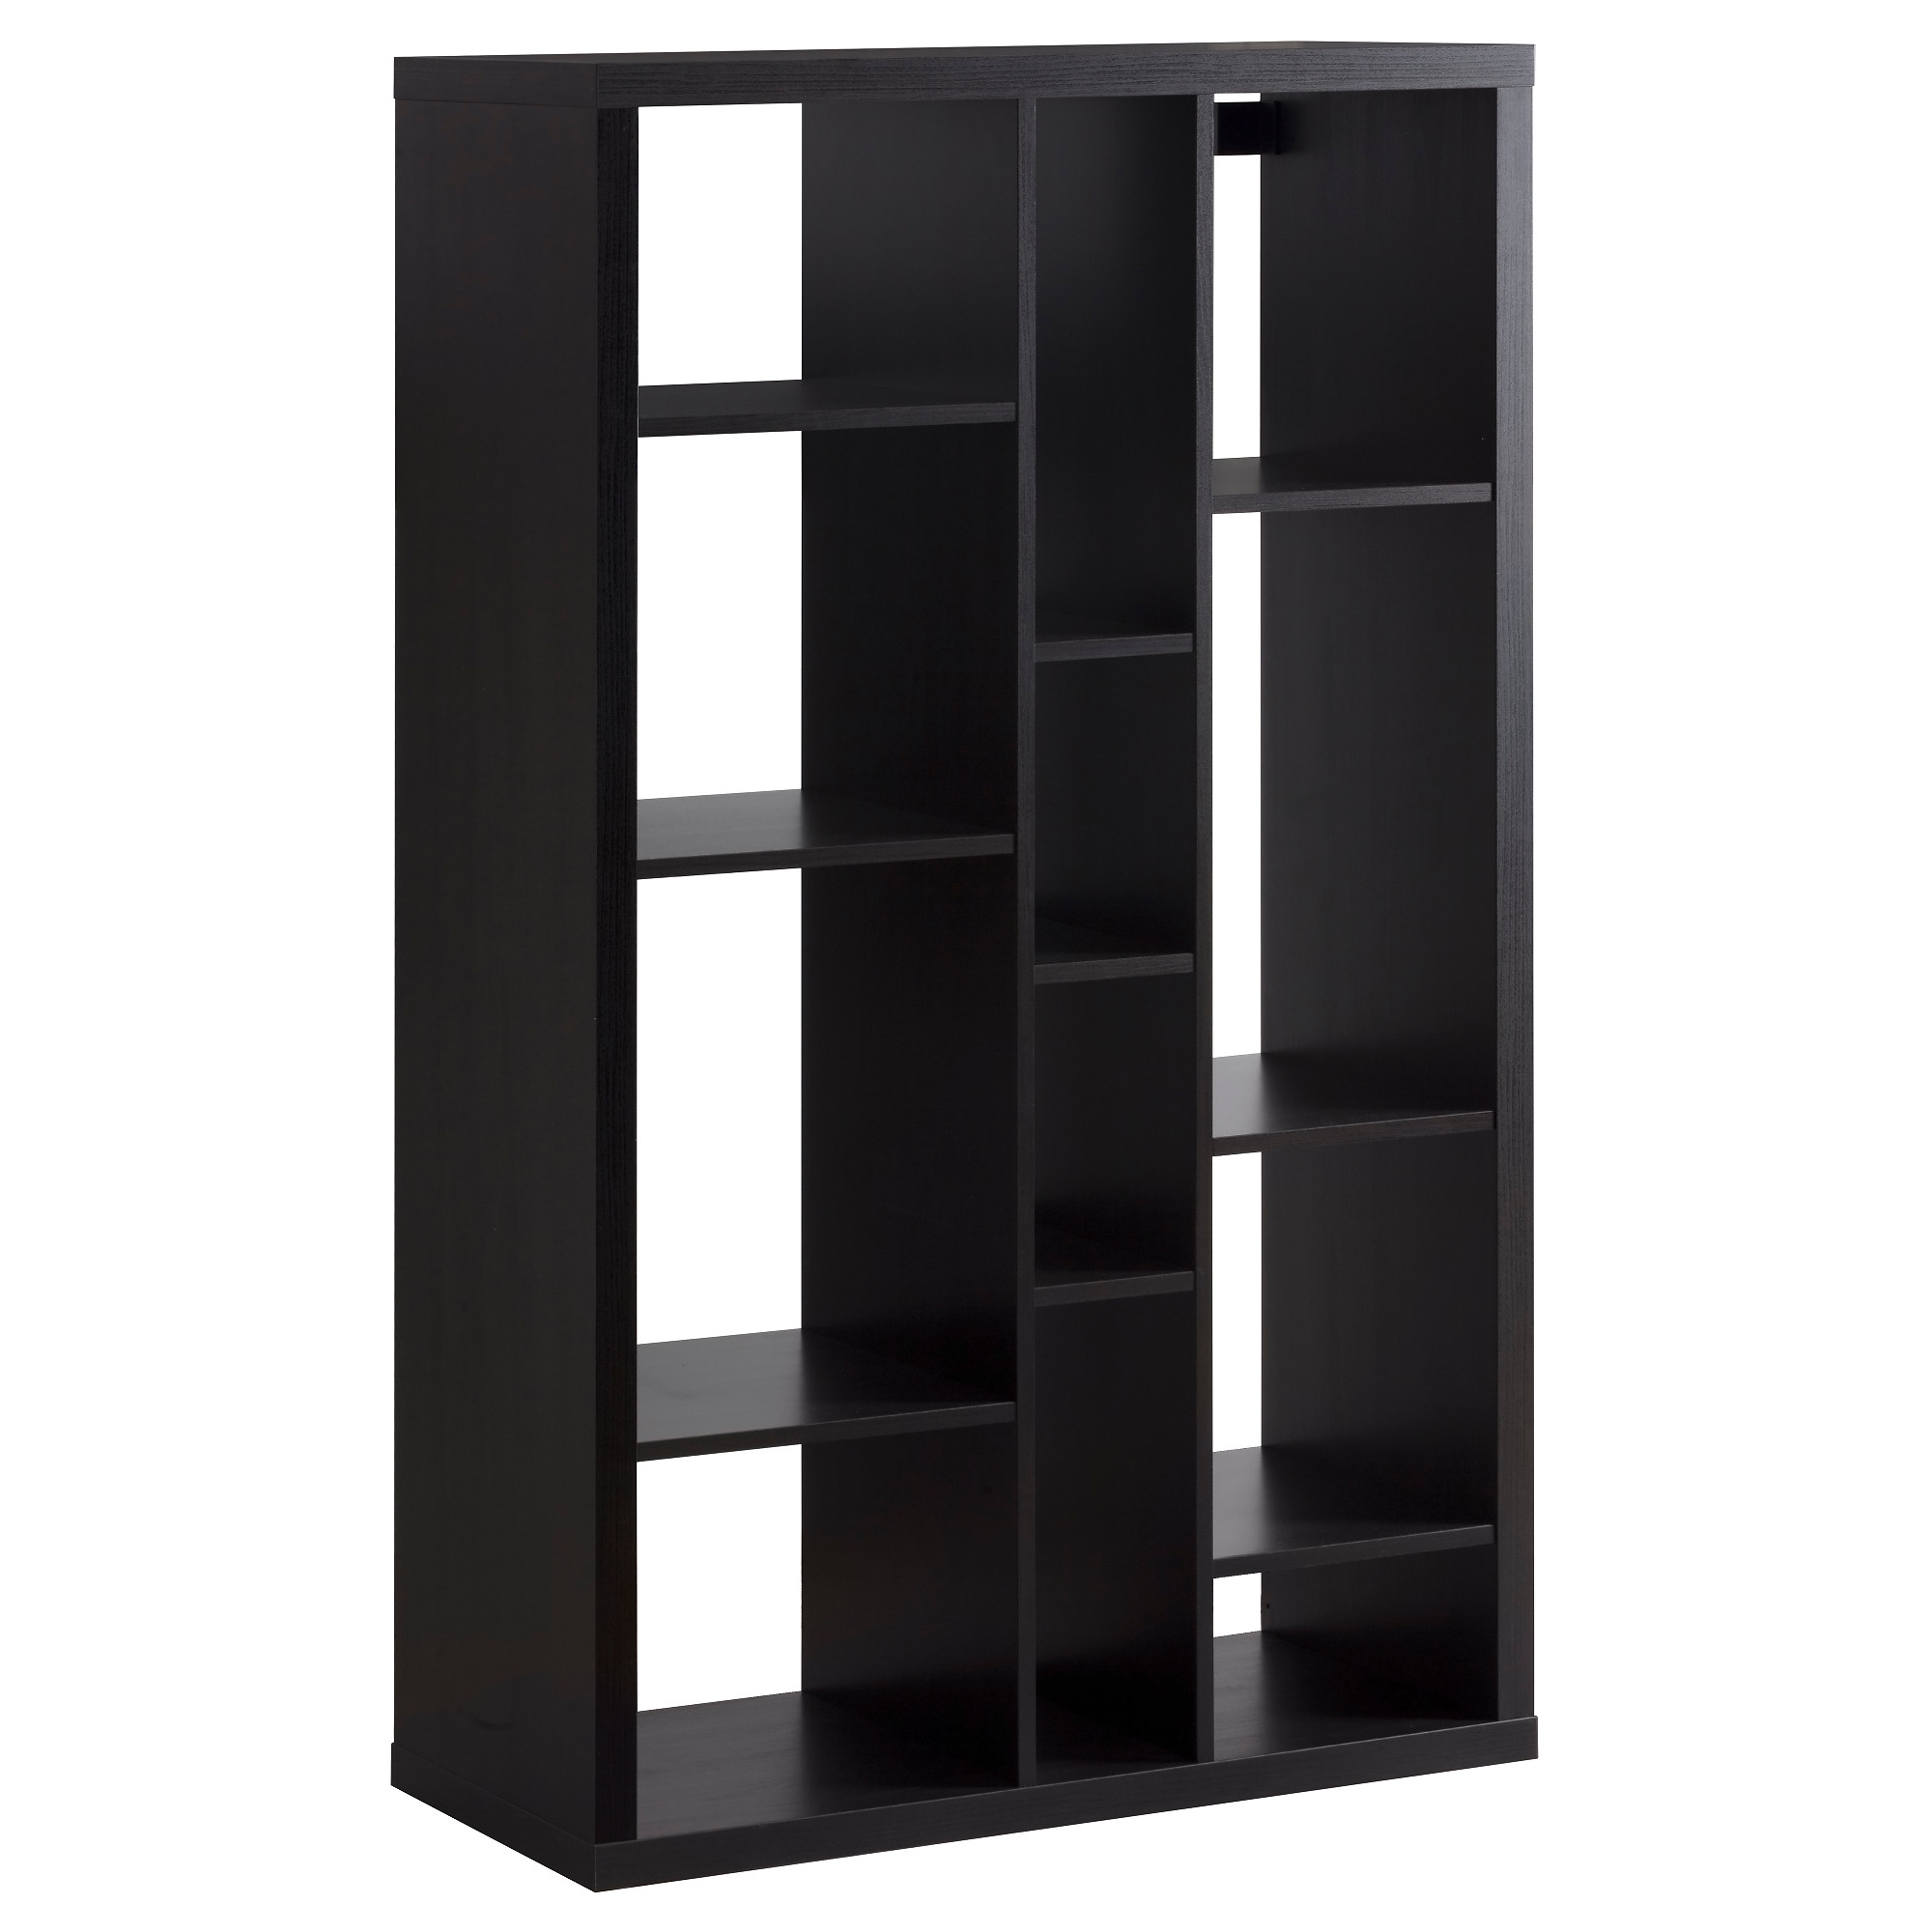 Kallax Shelf Unit – Black Brown – Ikea Inside 2018 Ikea Cube Bookcases (View 14 of 15)